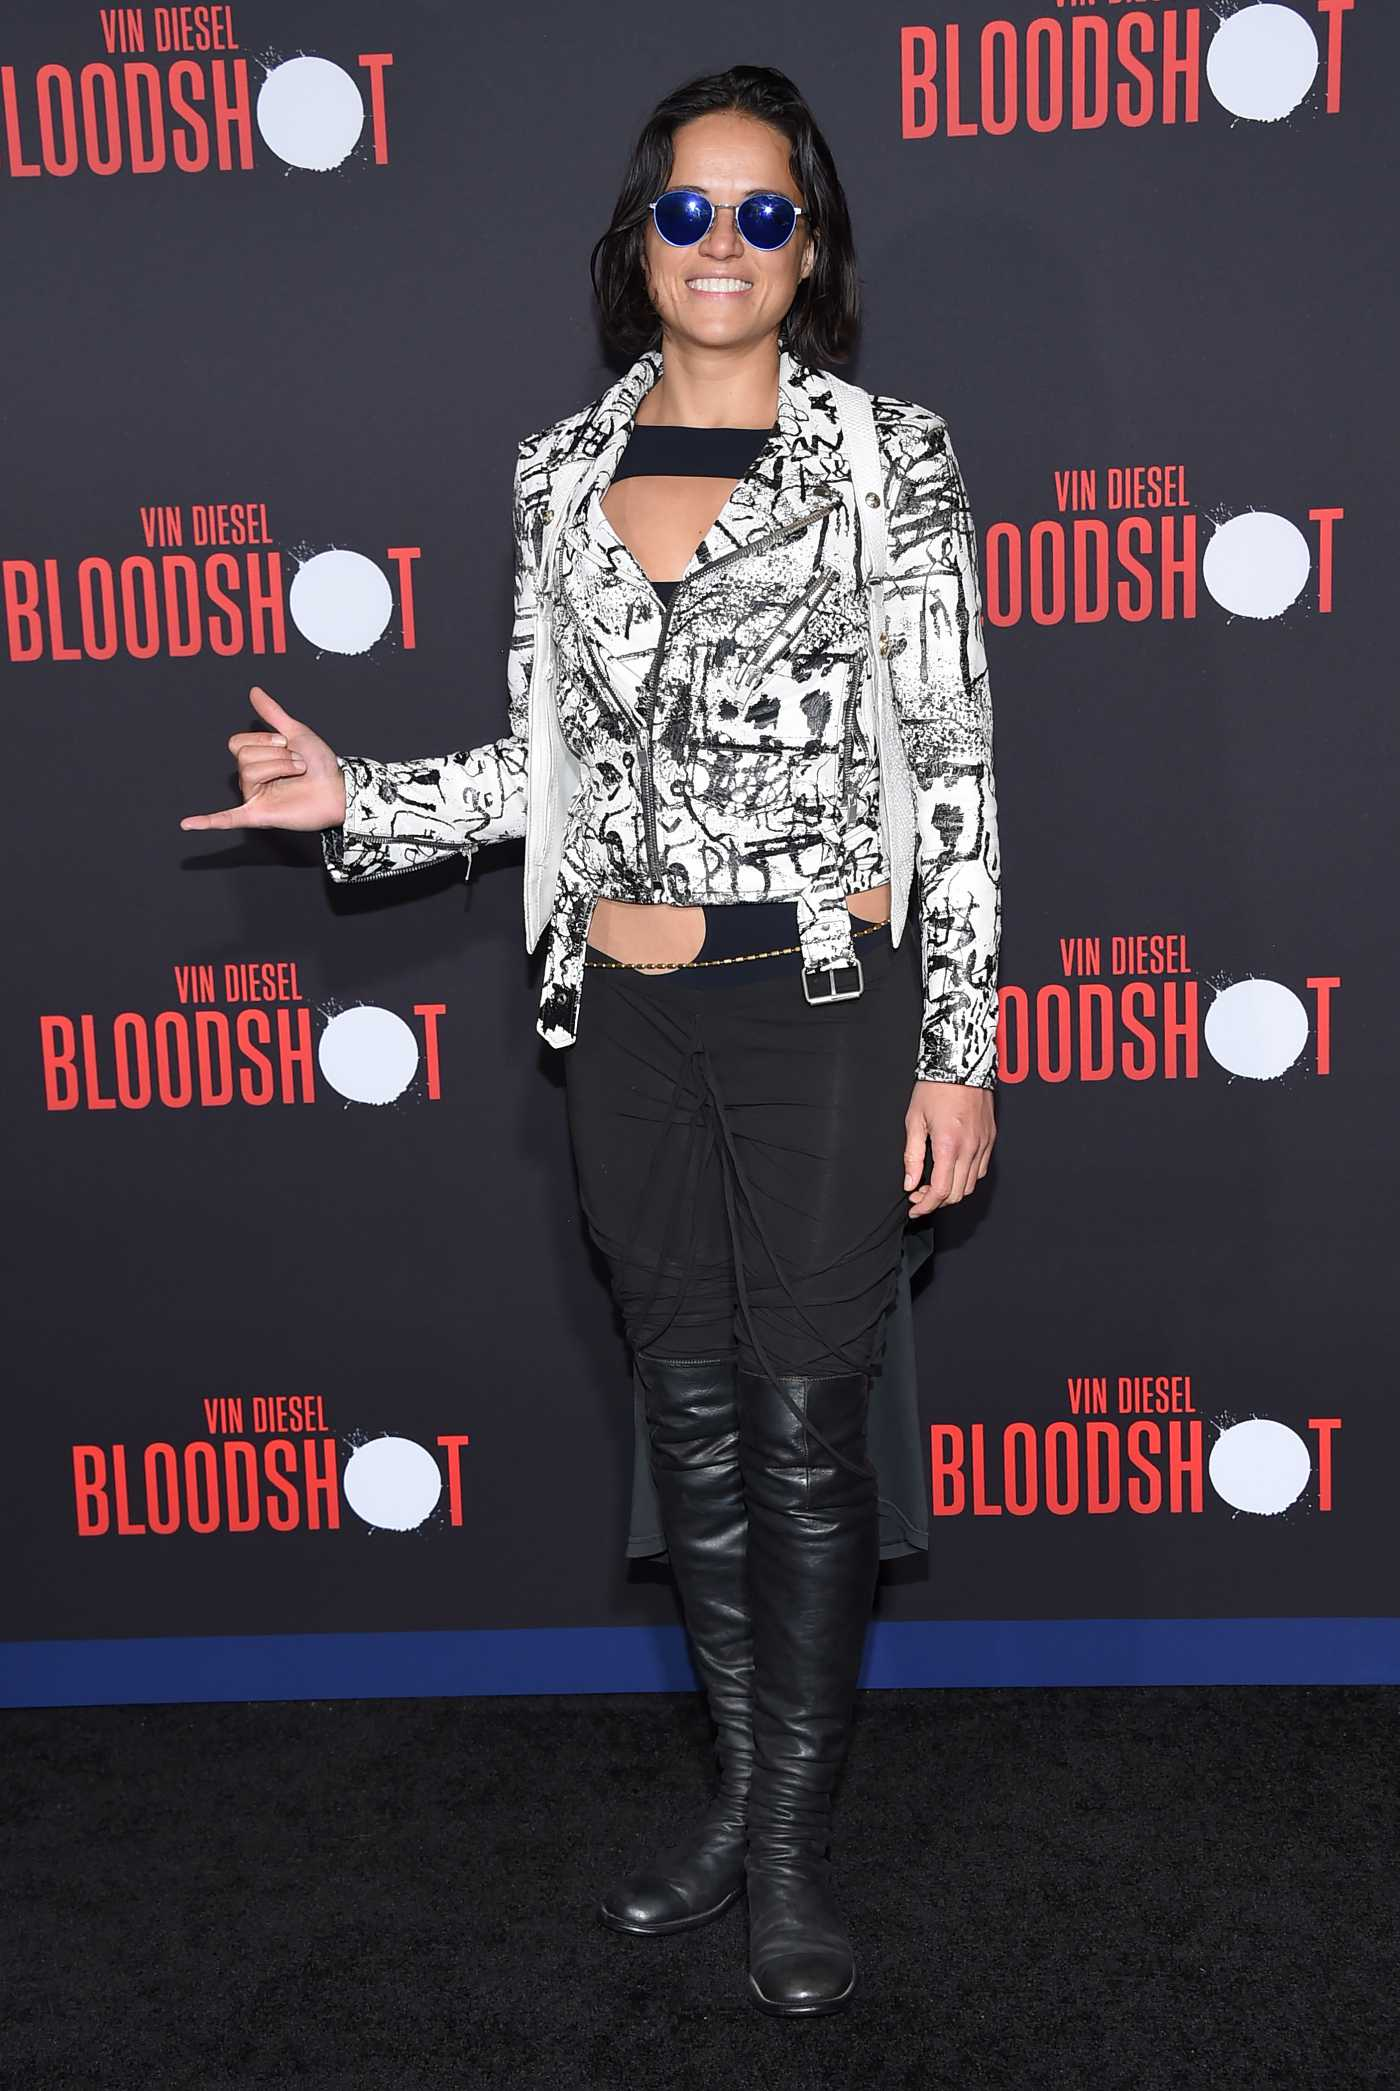 Michelle Rodriguez Attends the Bloodshot Premiere in Los Angeles 03/10/2020